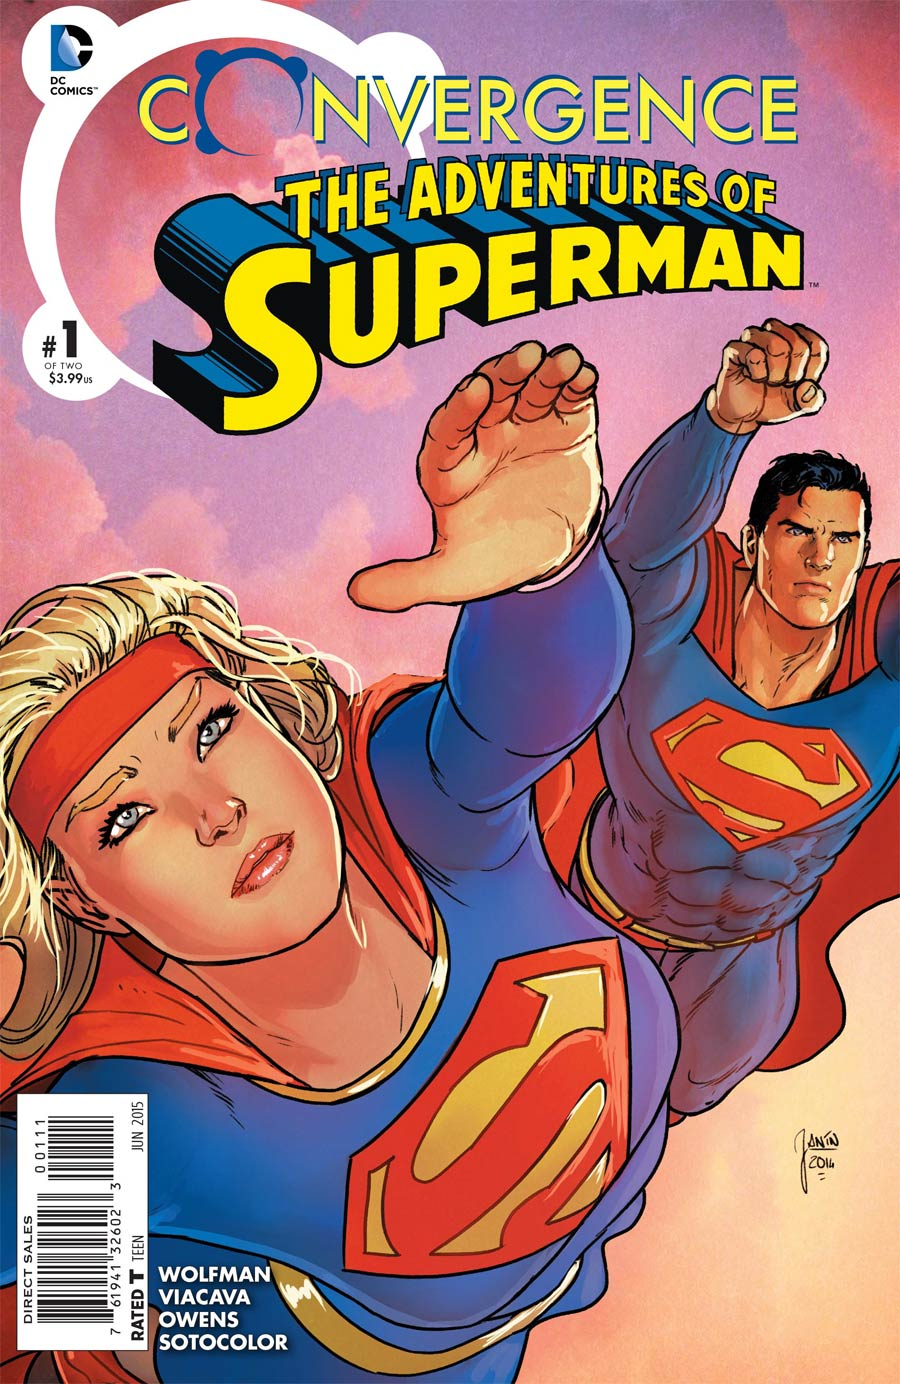 Convergence: Superman - Adventures of Superman #1